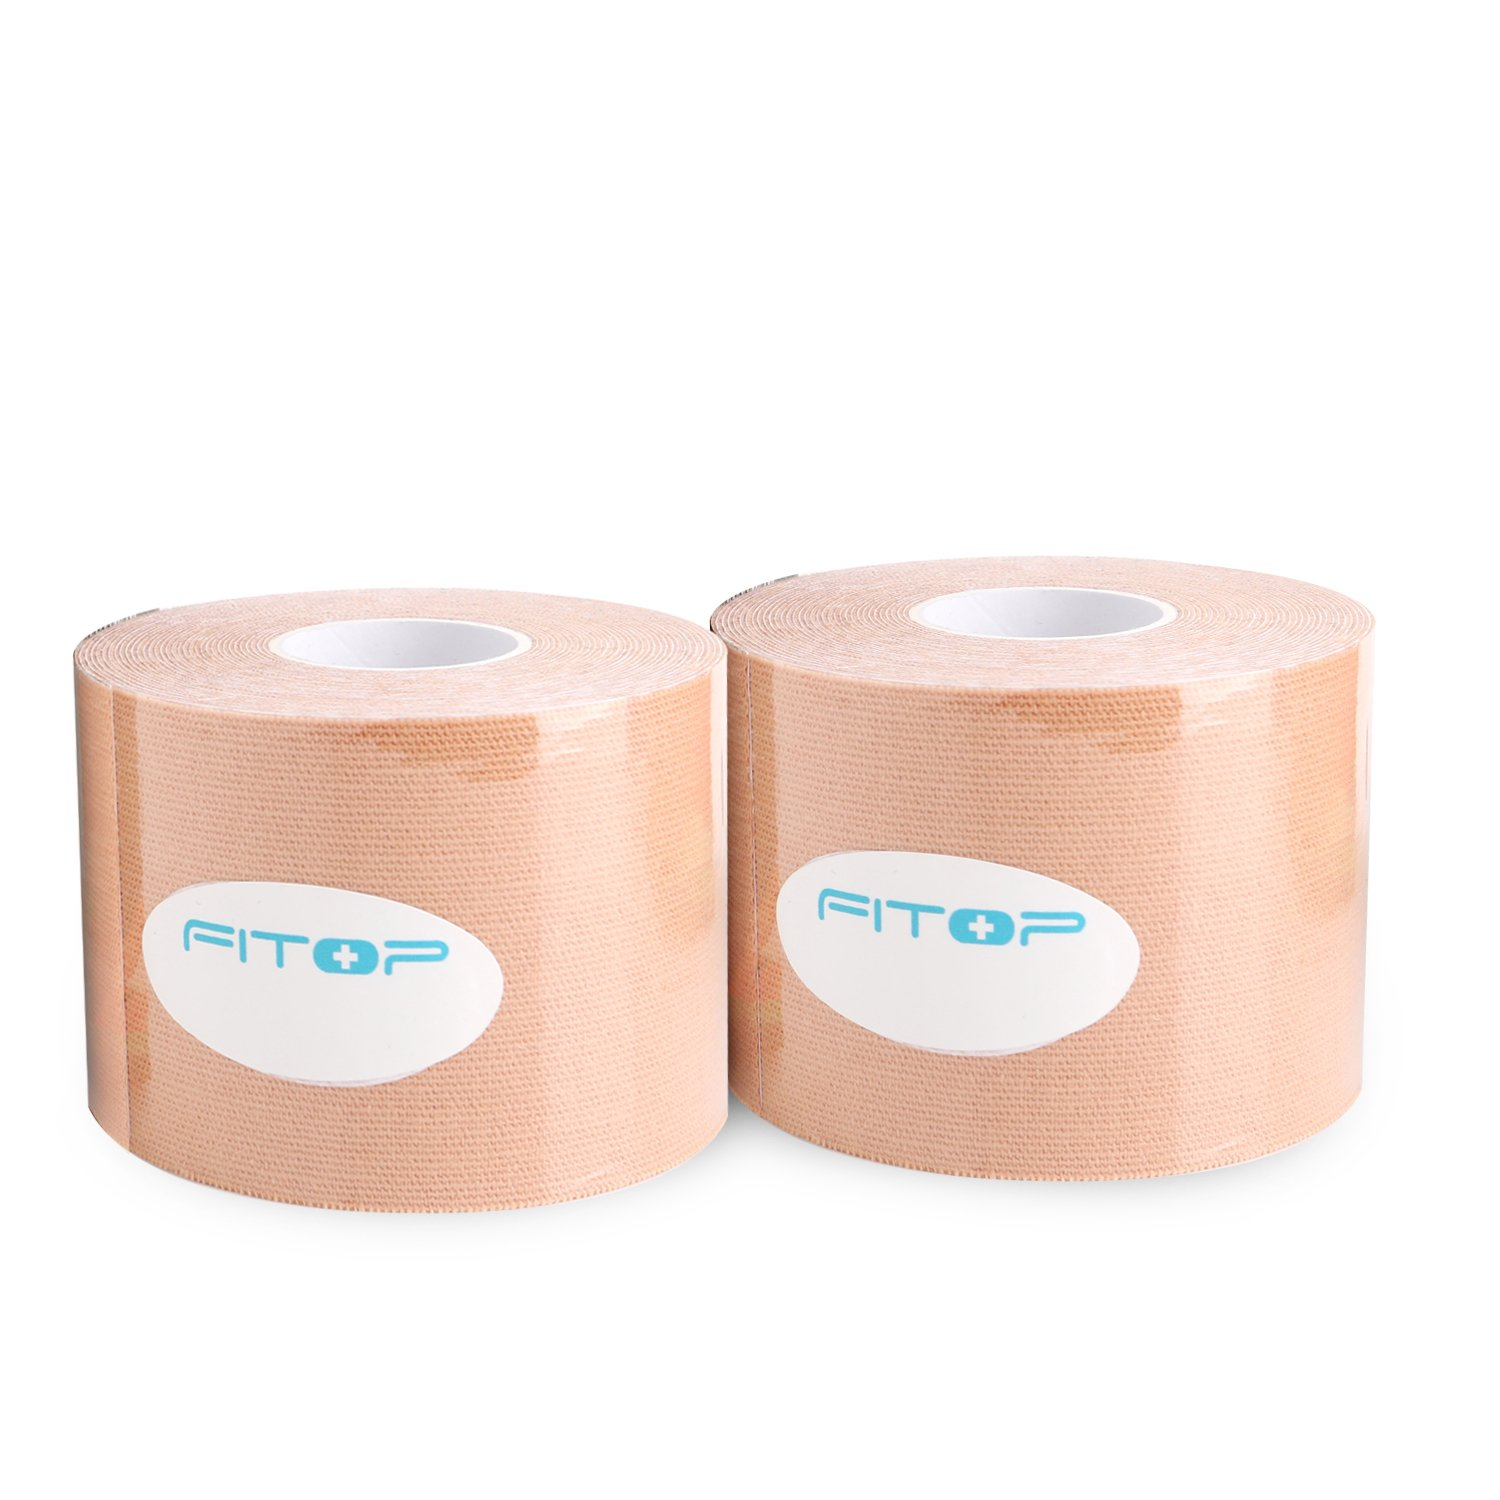 FITOP Premium Kinesiology Tape (2 Rolls Pack) for Athletes, Physiotherapy Not Pre-Cut Sports Tape, FDA Approval, Color Beige